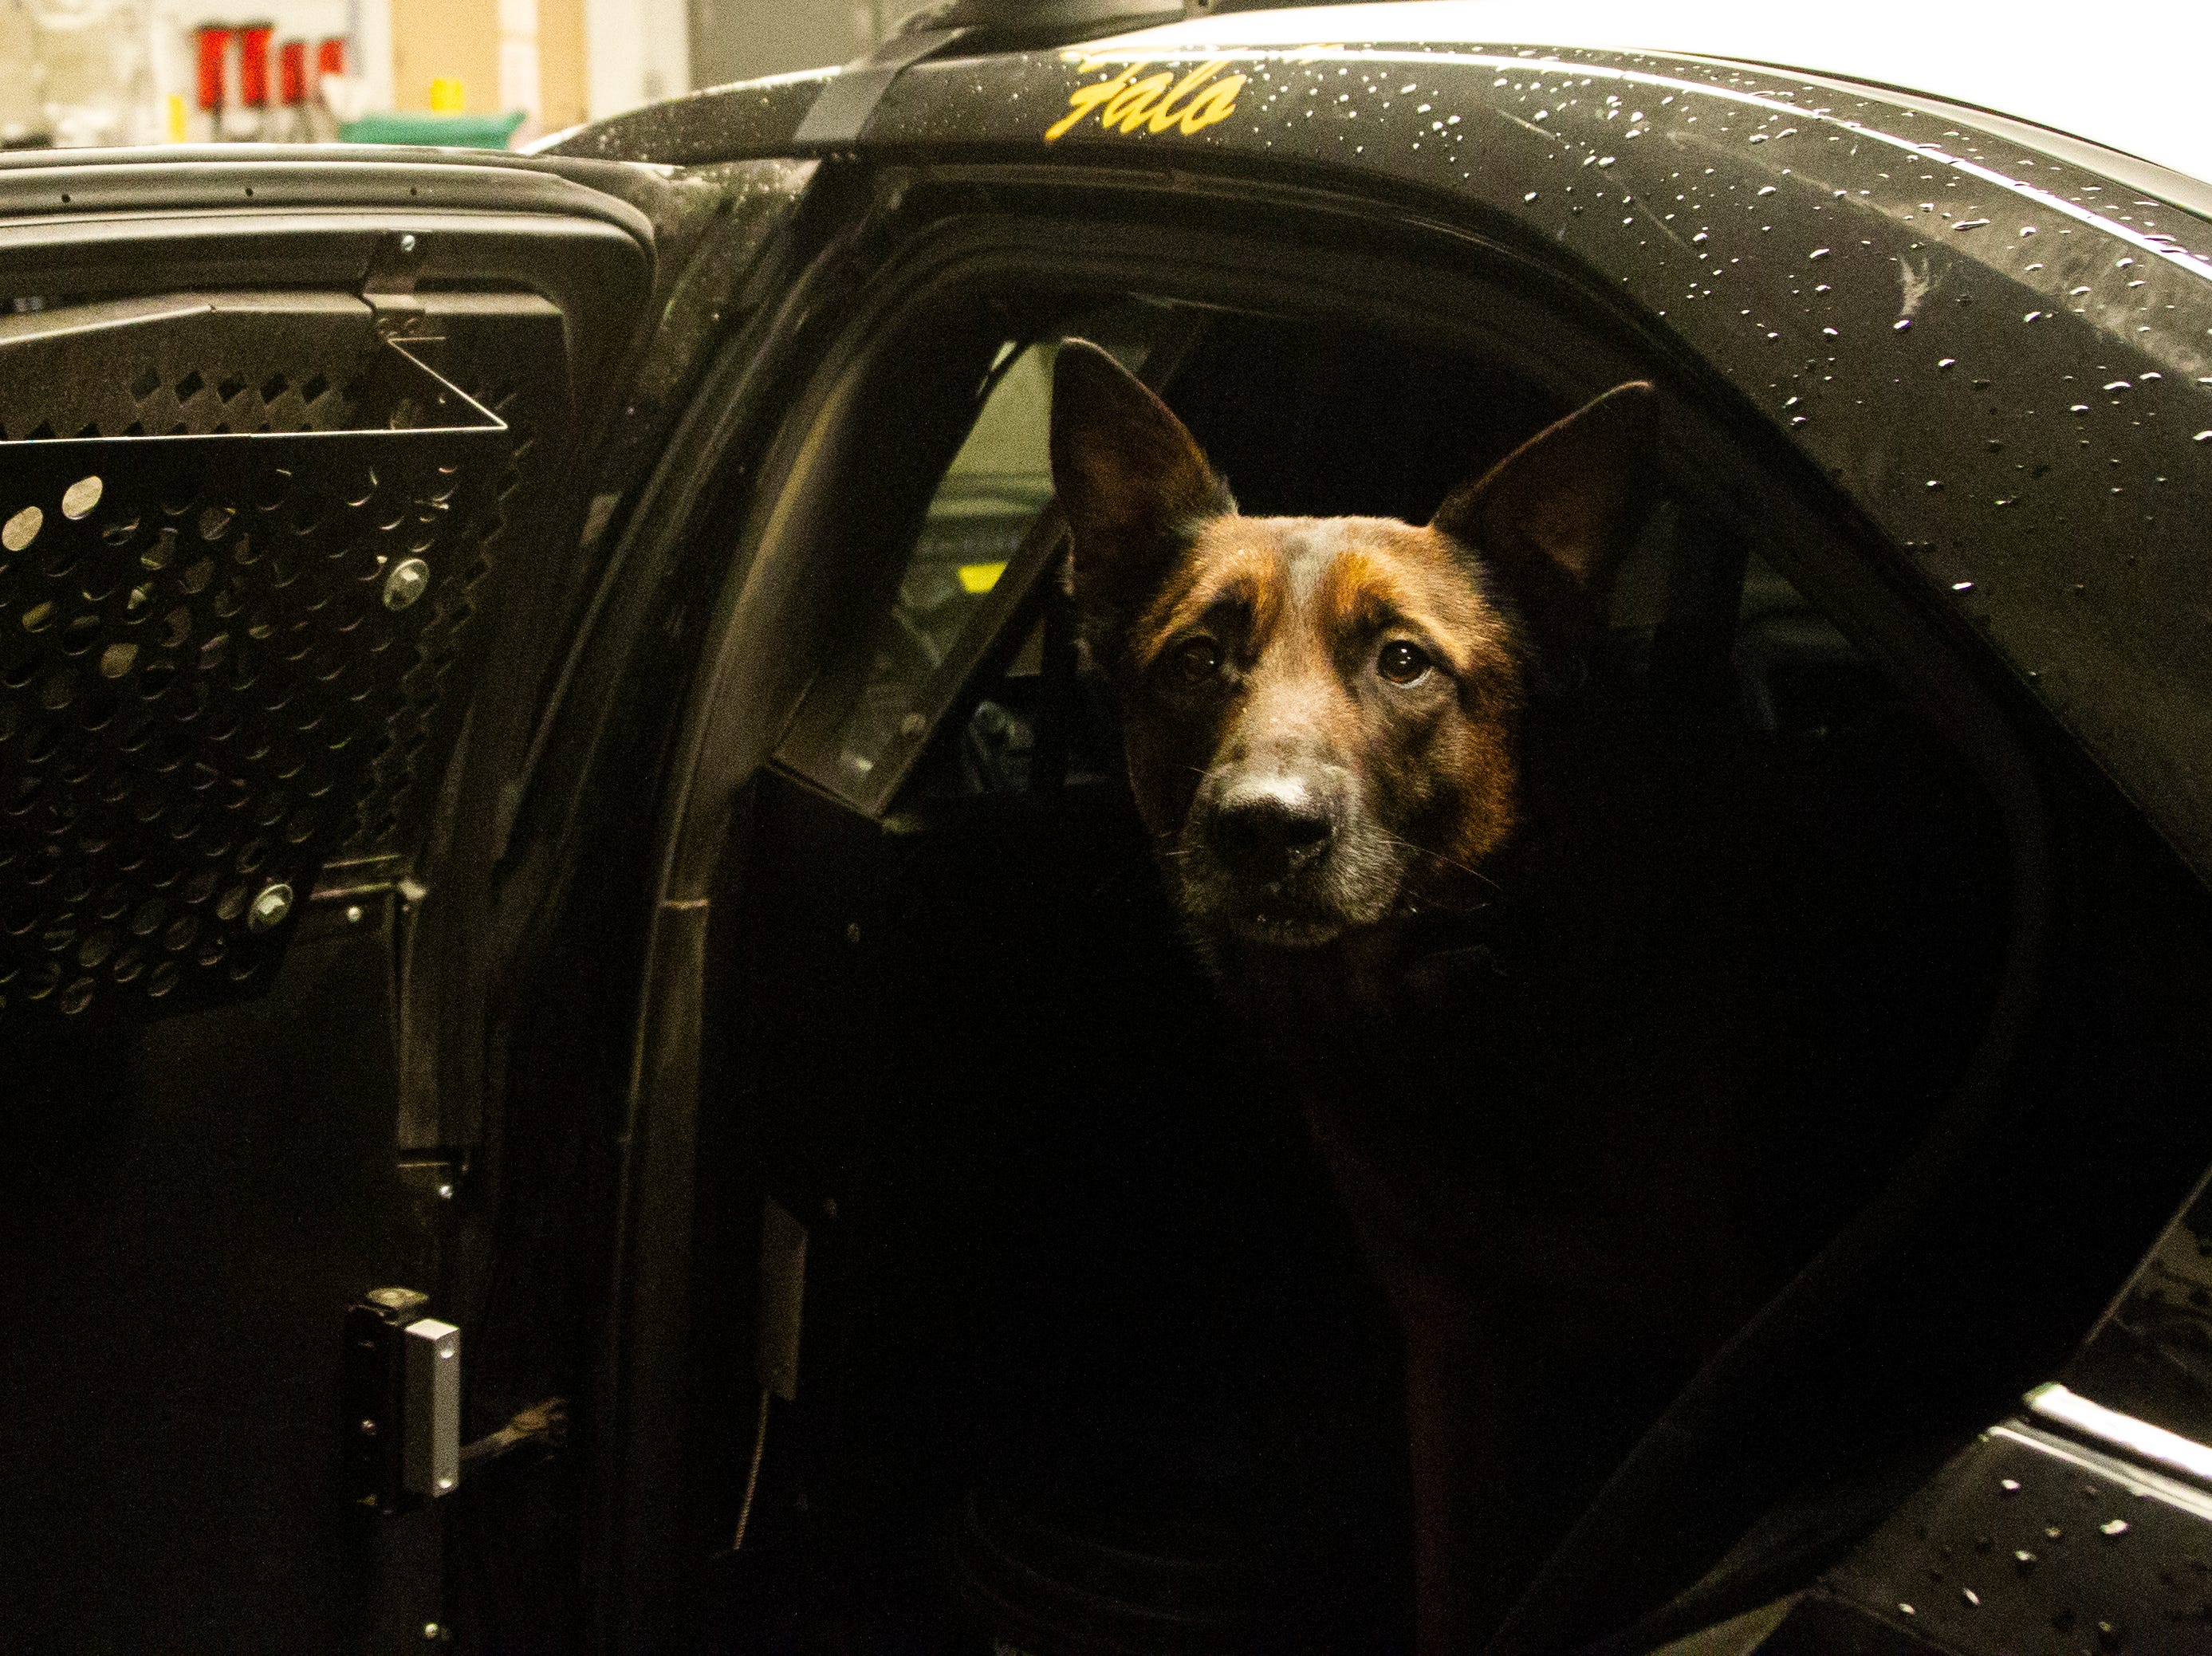 K9 Falo, an explosive and detection dog, sits in the back seat of Officer Jackie Anderson's car on Saturday, Dec. 1, 2018, at the University of Iowa Police Department at the Old Capitol Town Center in Iowa City.